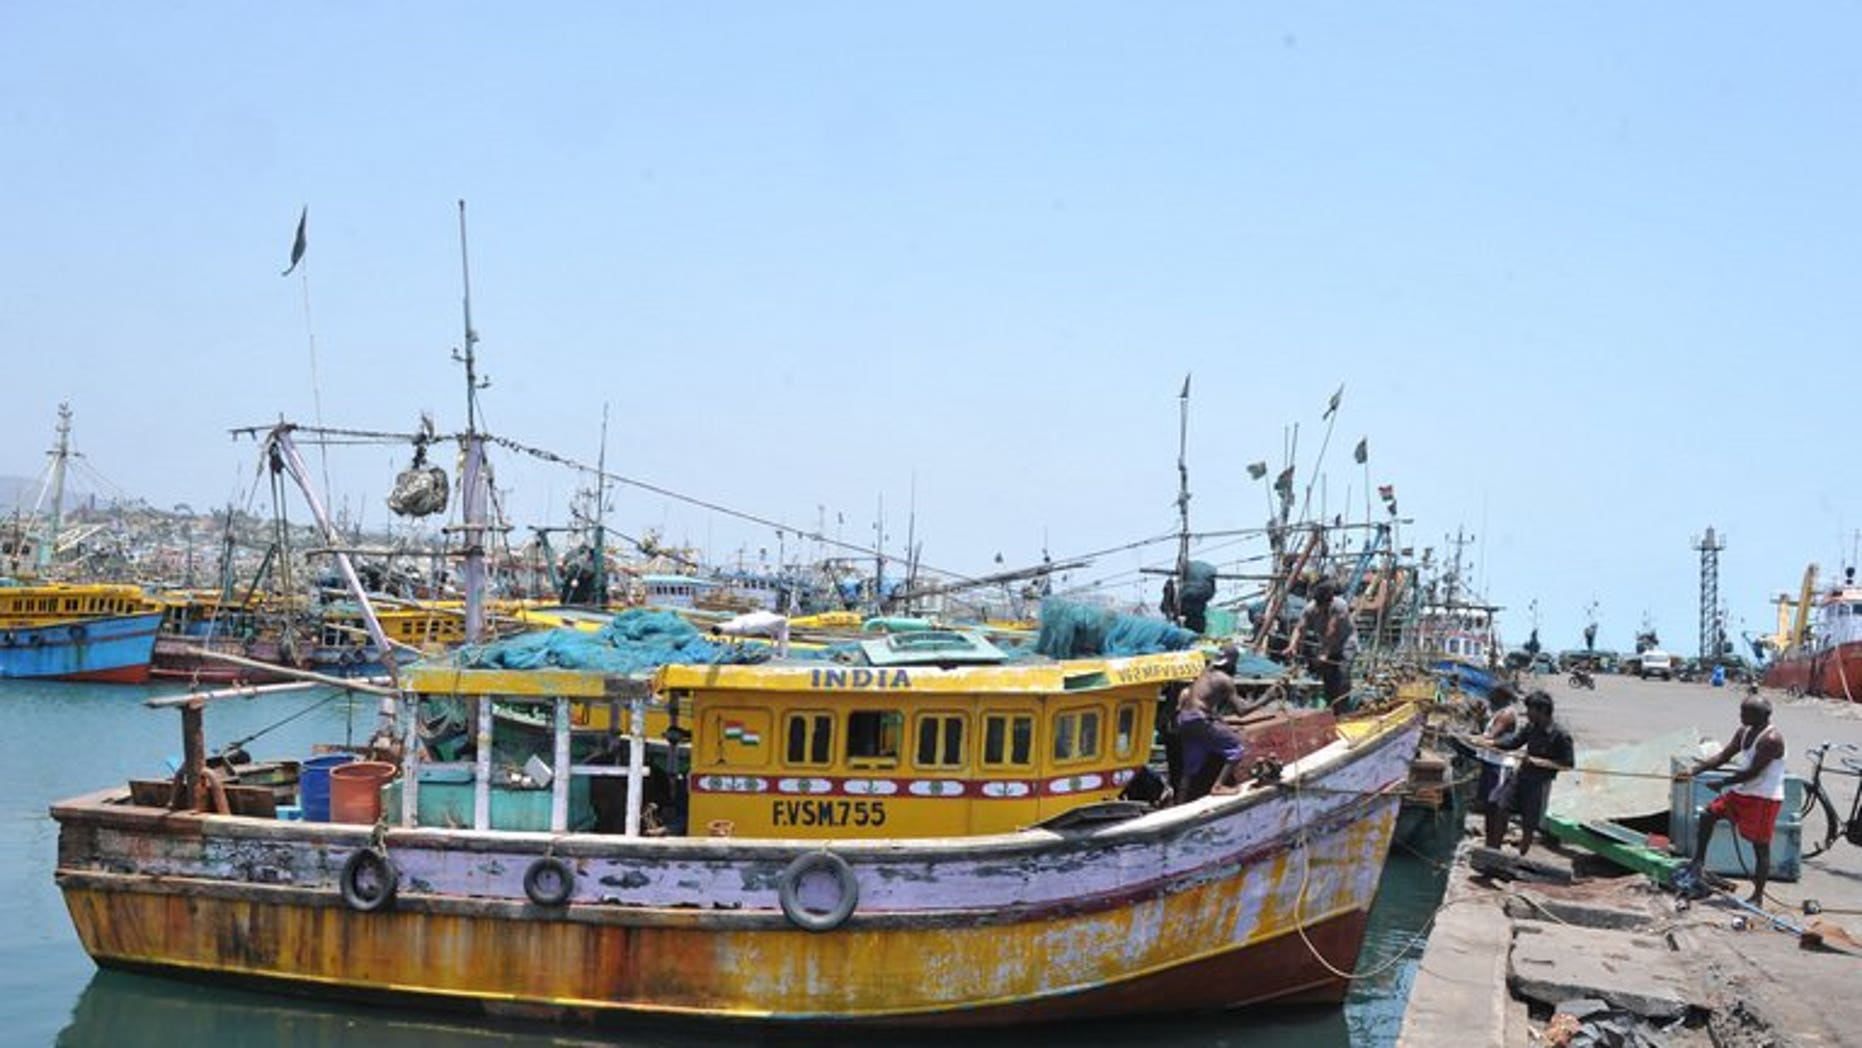 Indian fishermen work on the dockside in Visakhapatnam on April 9, 2012.